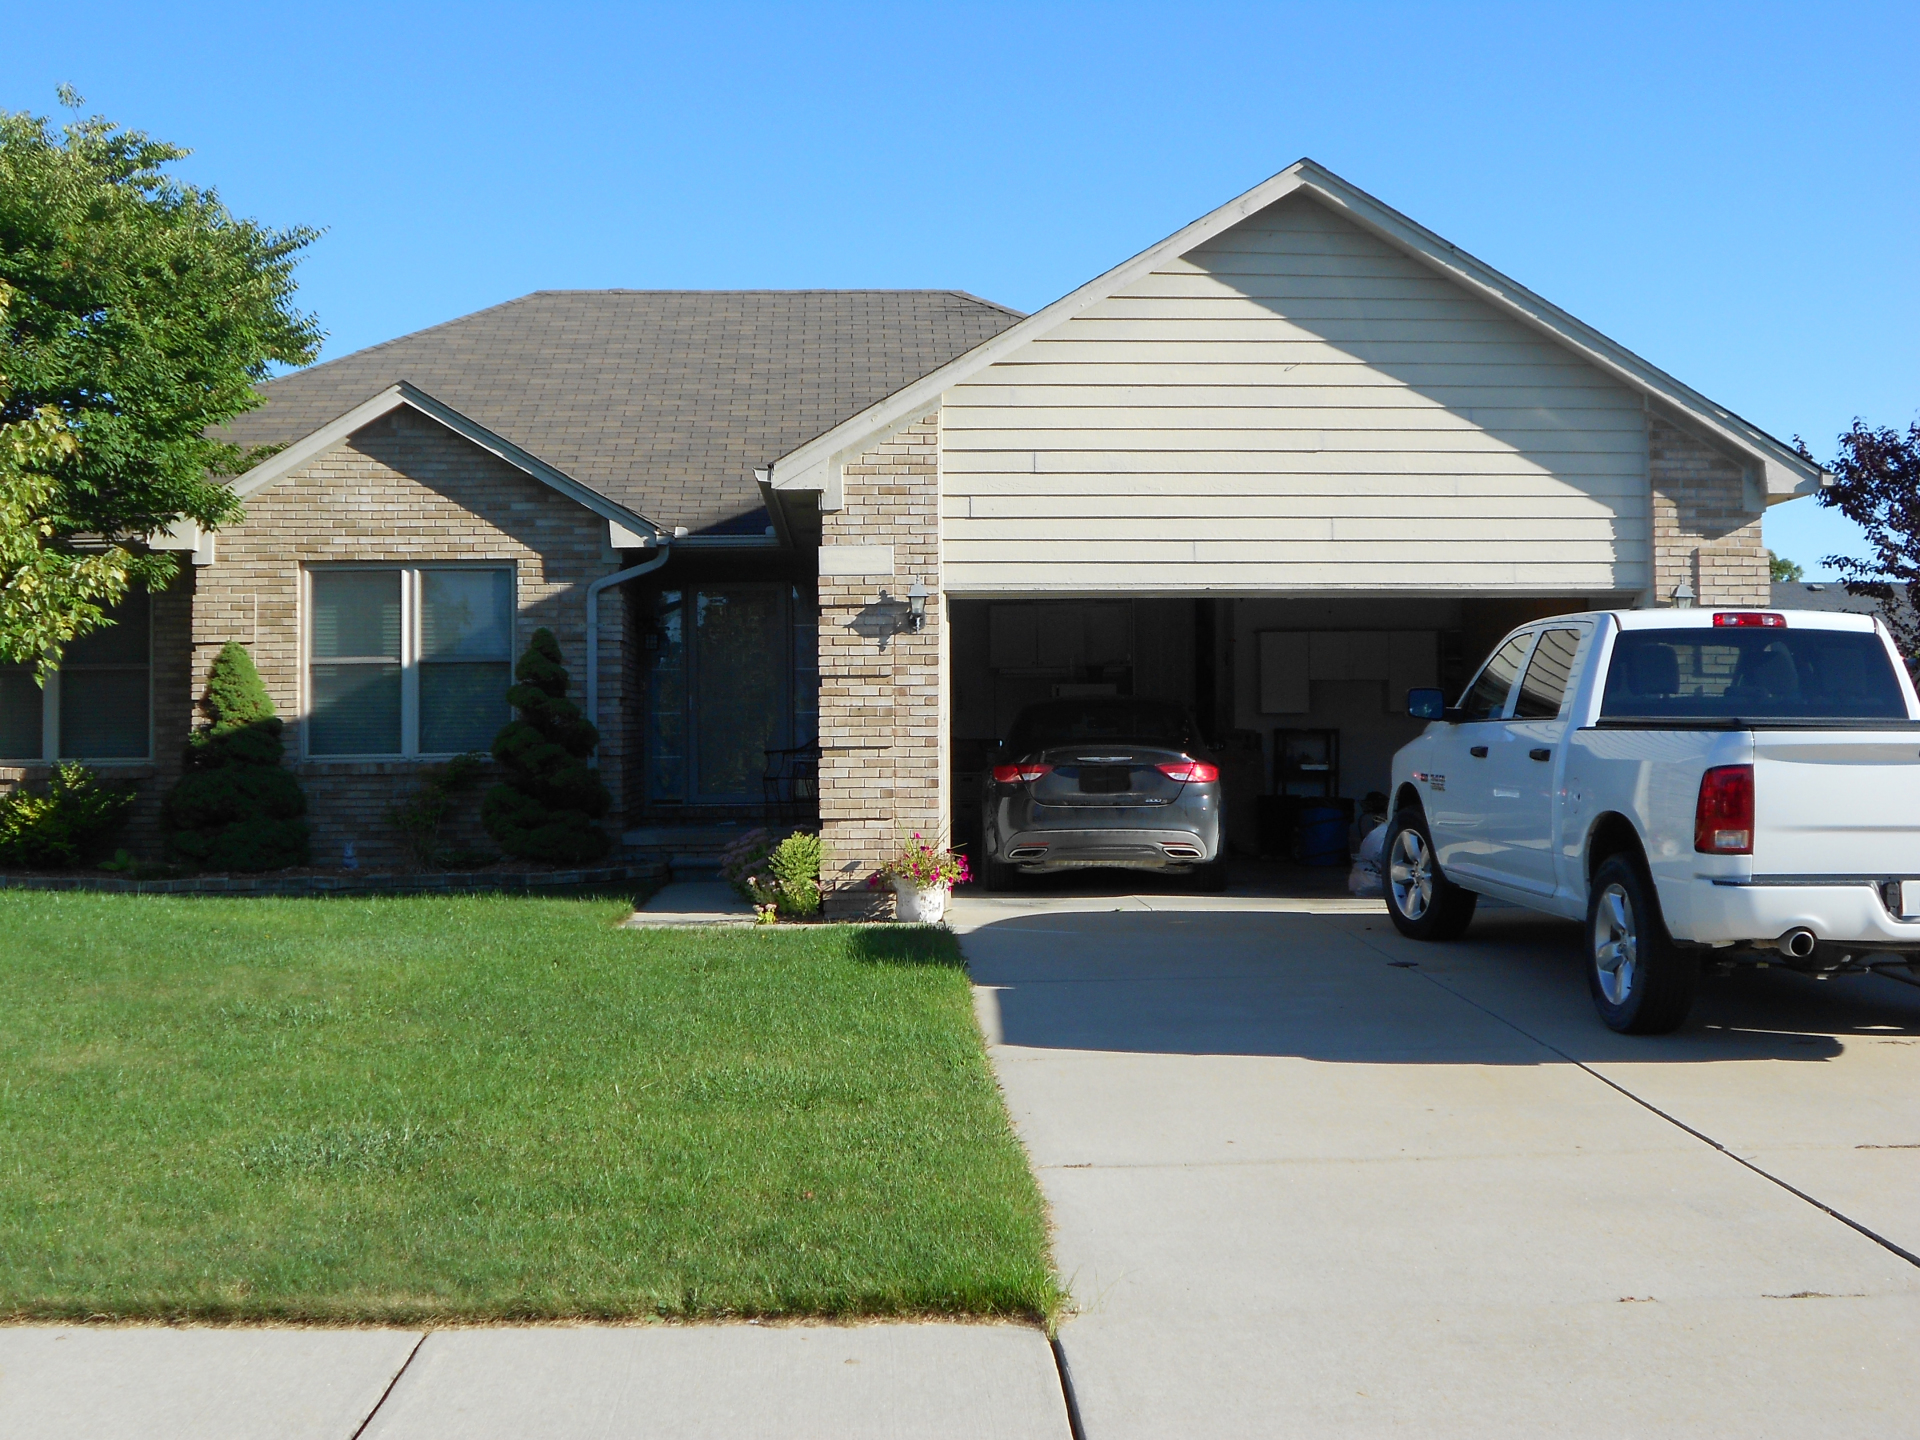 One of our home inspections in Richmond, MI.